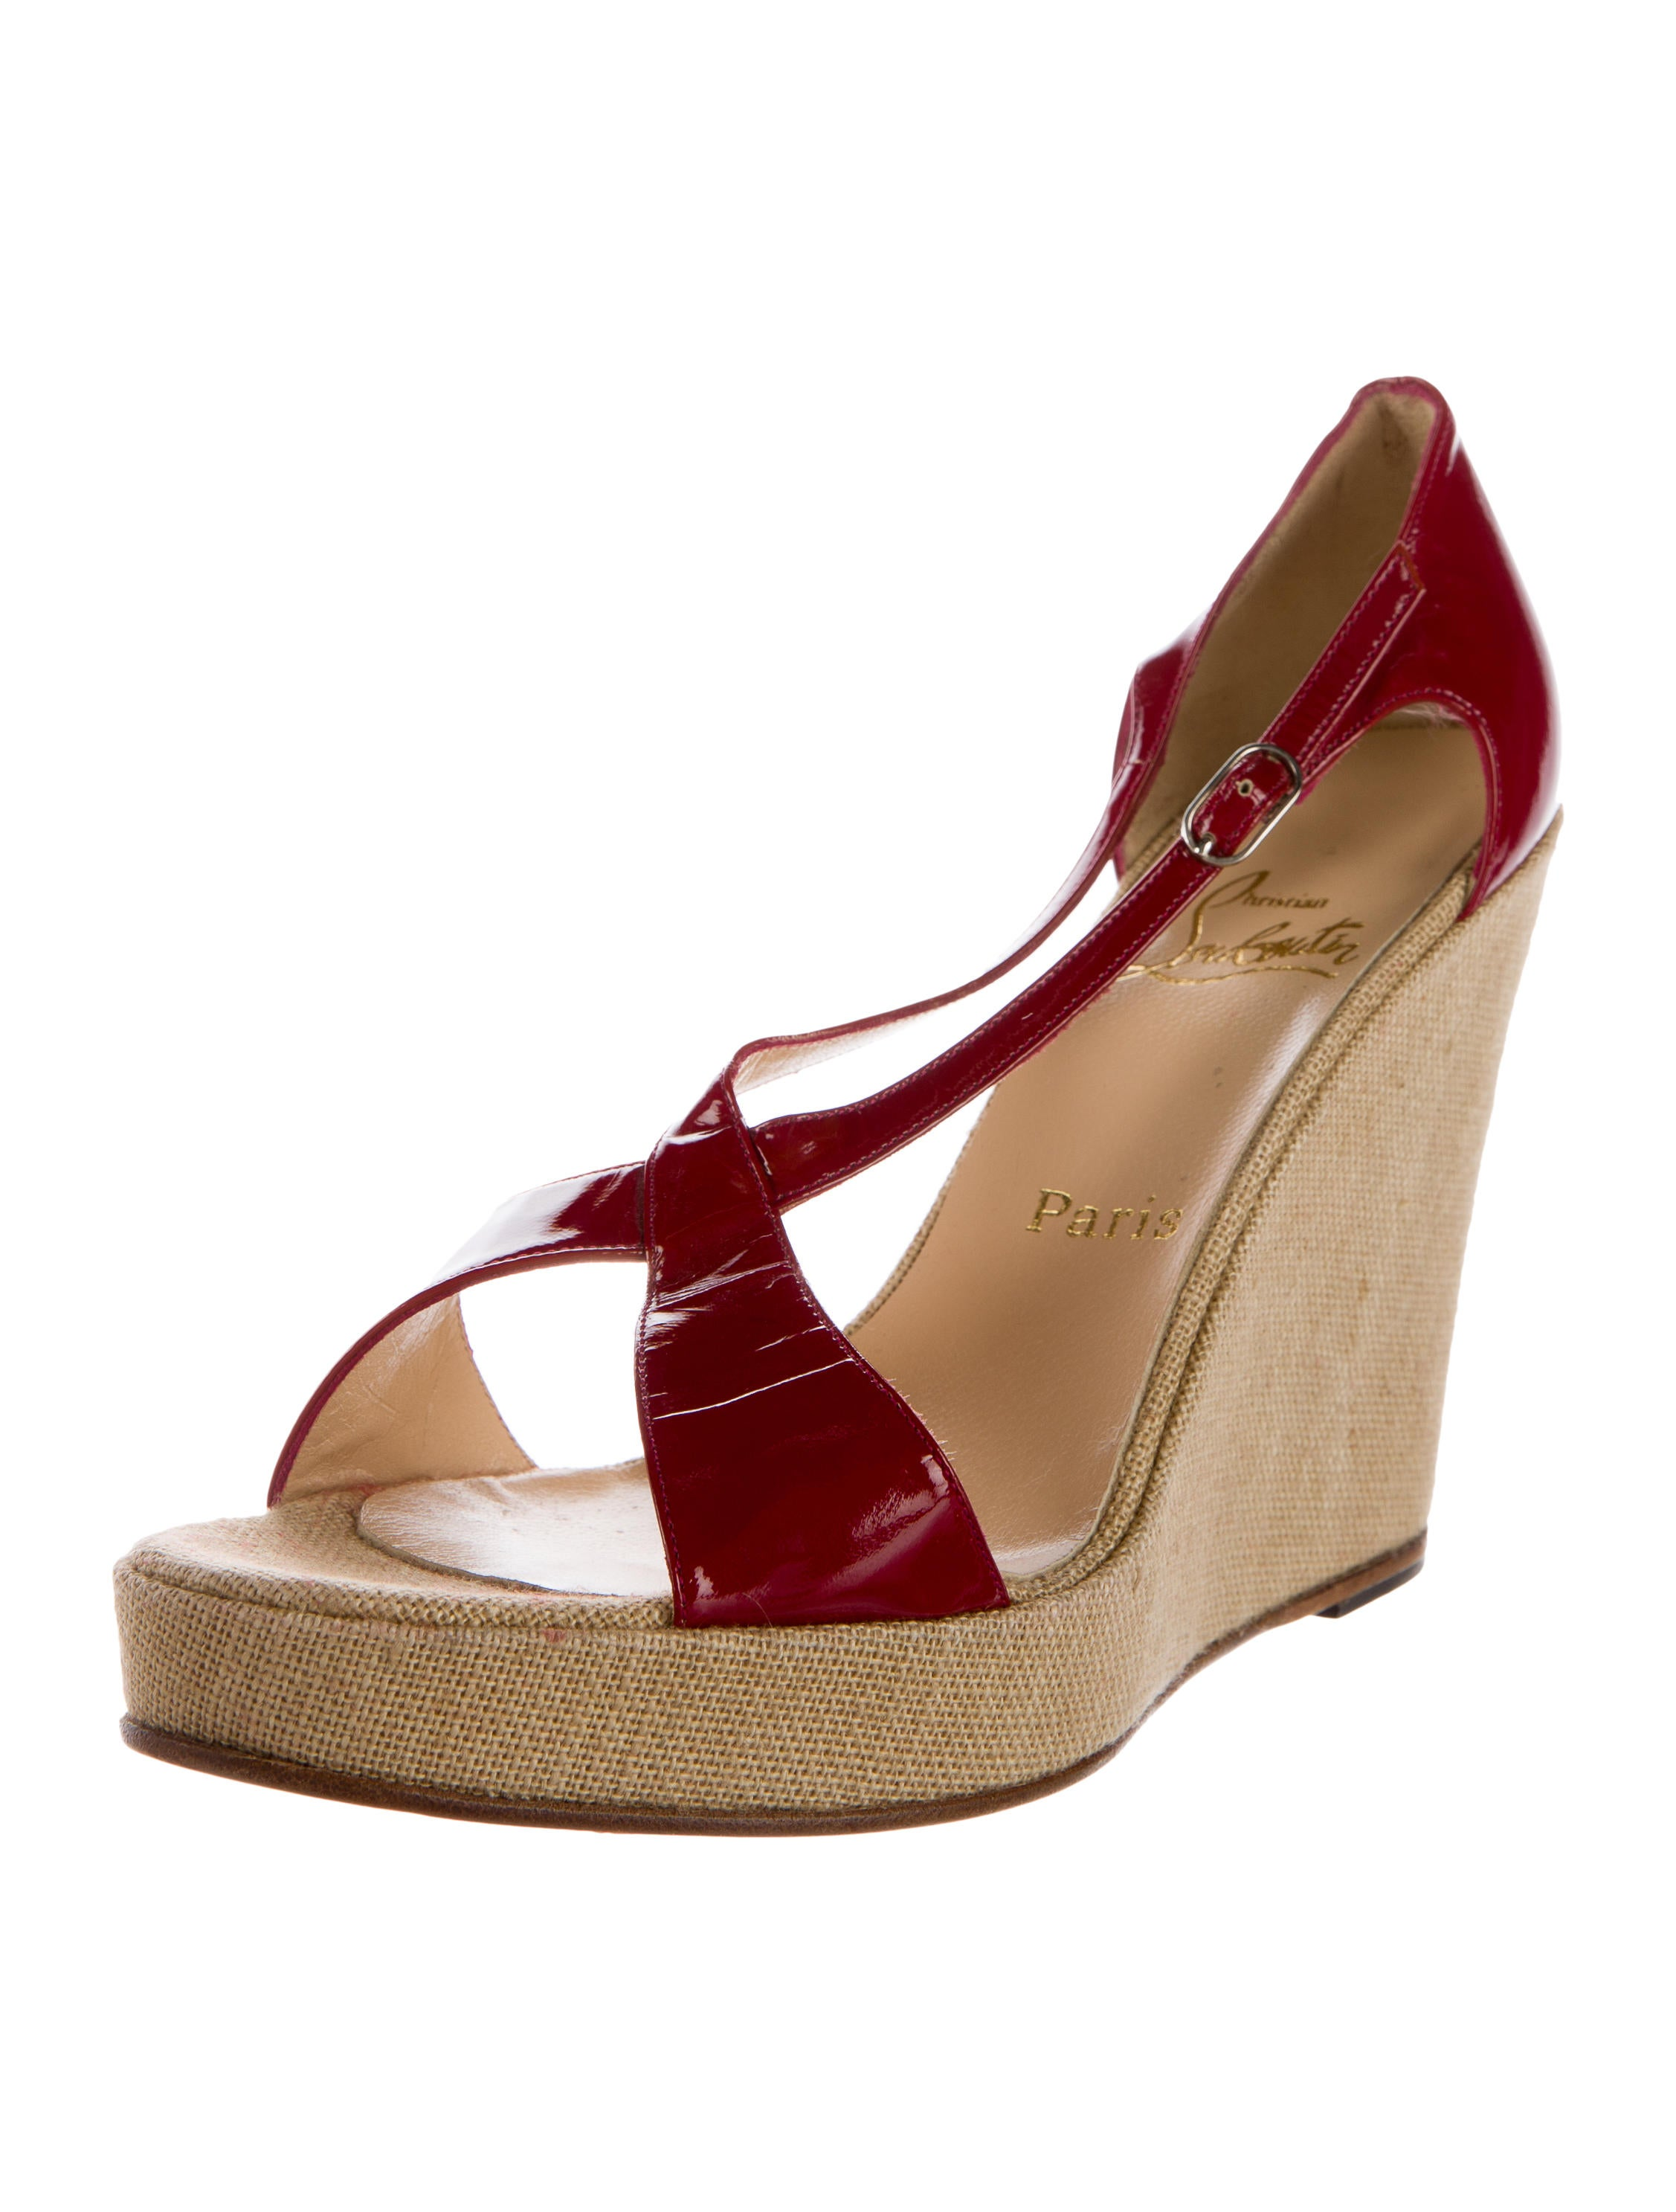 christian louboutin patent crossover wedge sandals shoes